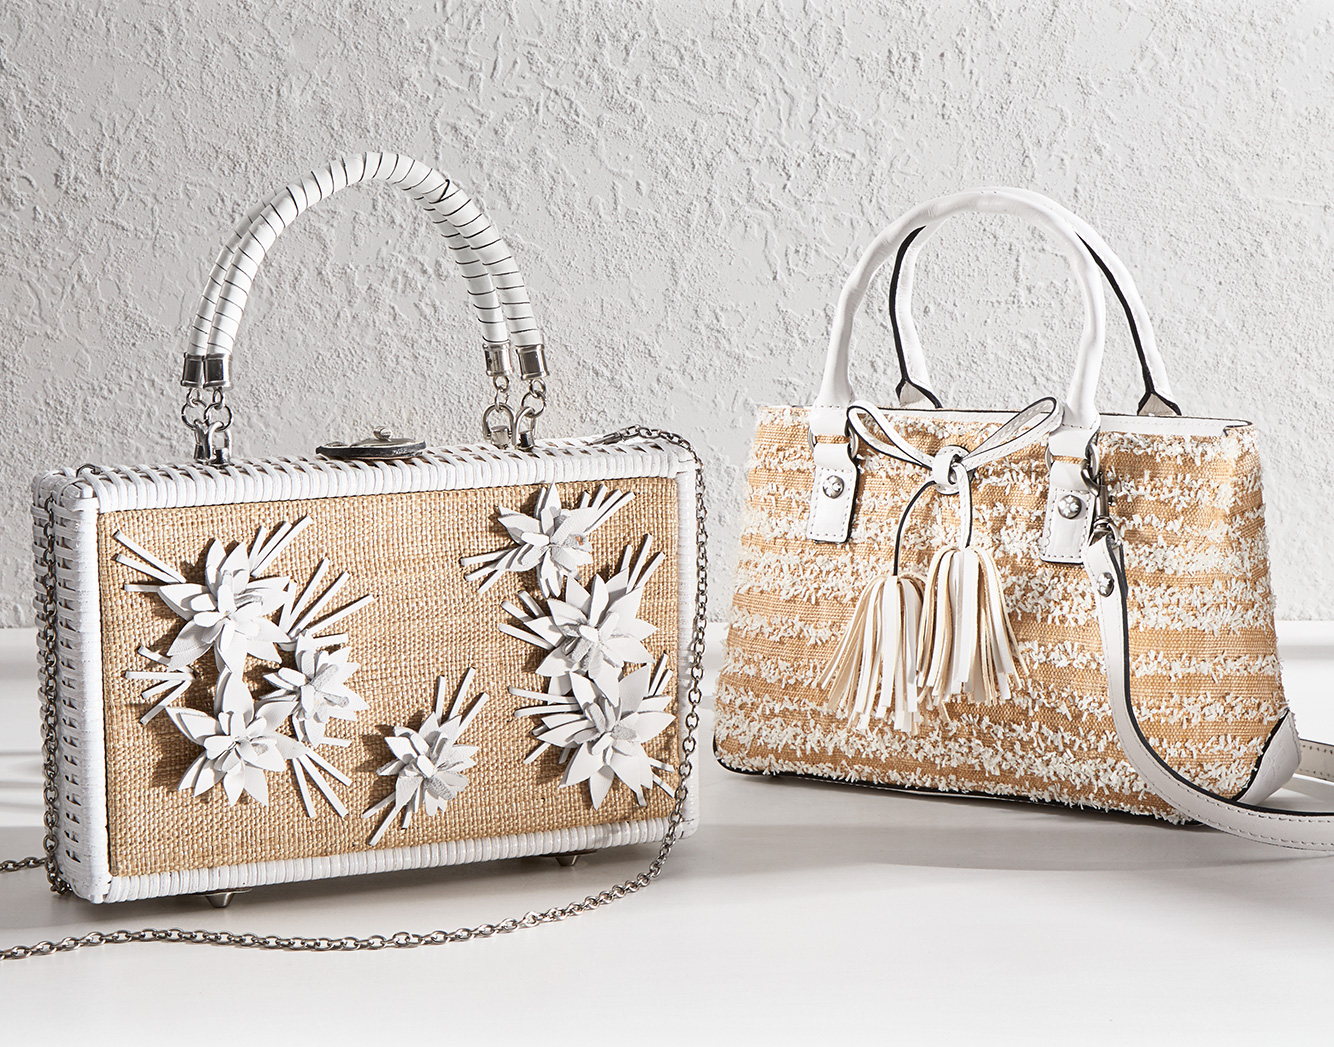 Spring Handbags and Accessories Trends – Macy s 0046a90dbb916